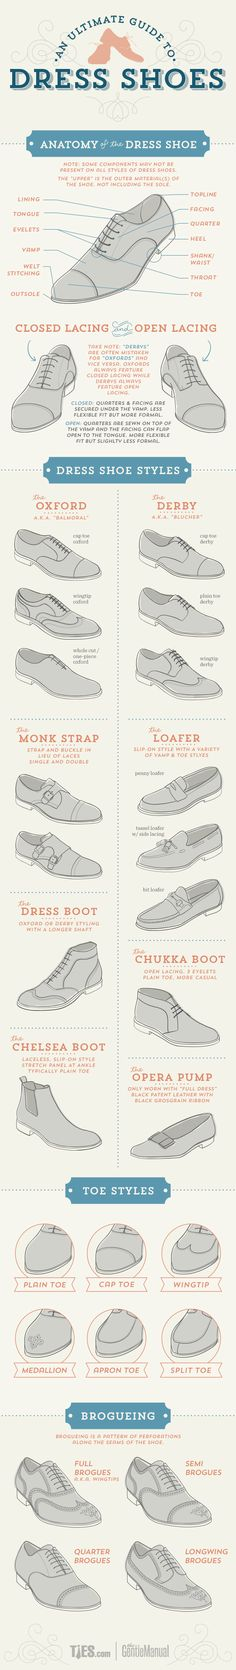 An Ultimate Guide To Dress Shoes